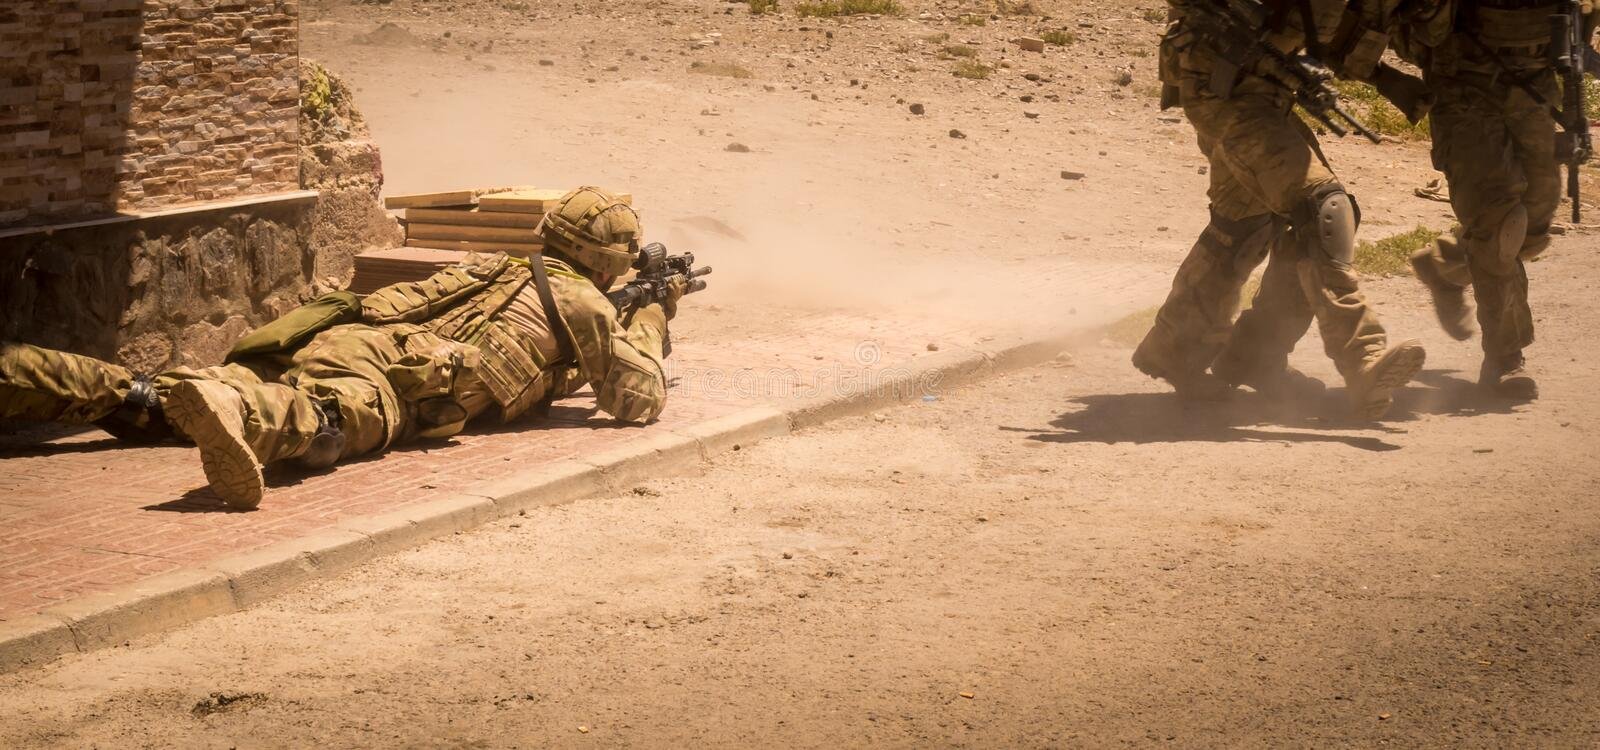 Soldiers in action in conflict zone III stock images